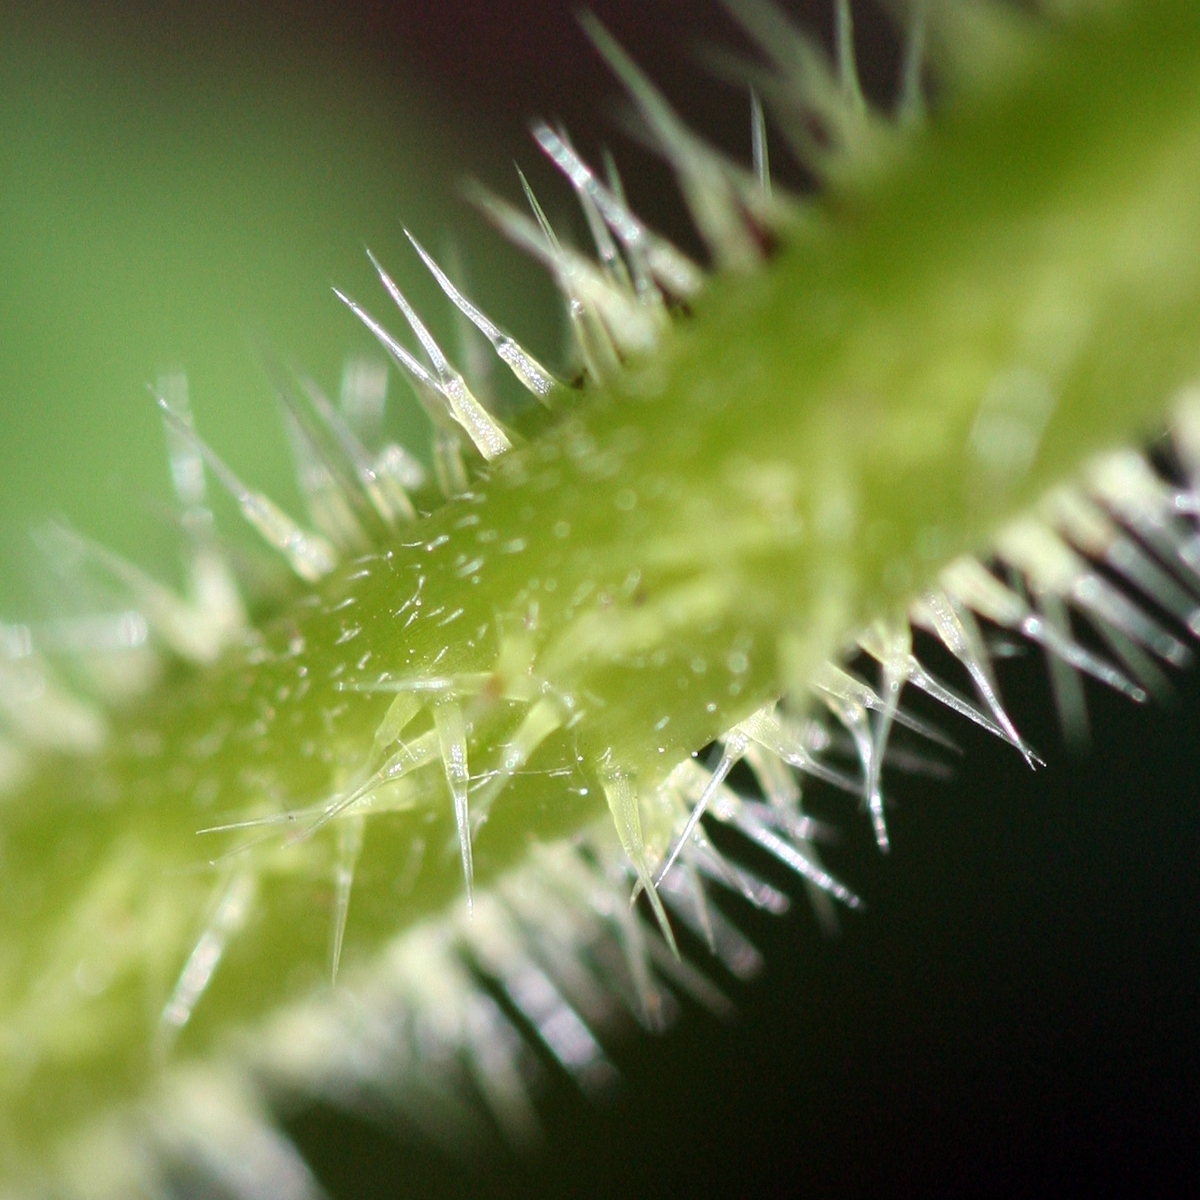 urtica dioica stinging nettle hairs spines spikes needles thorns